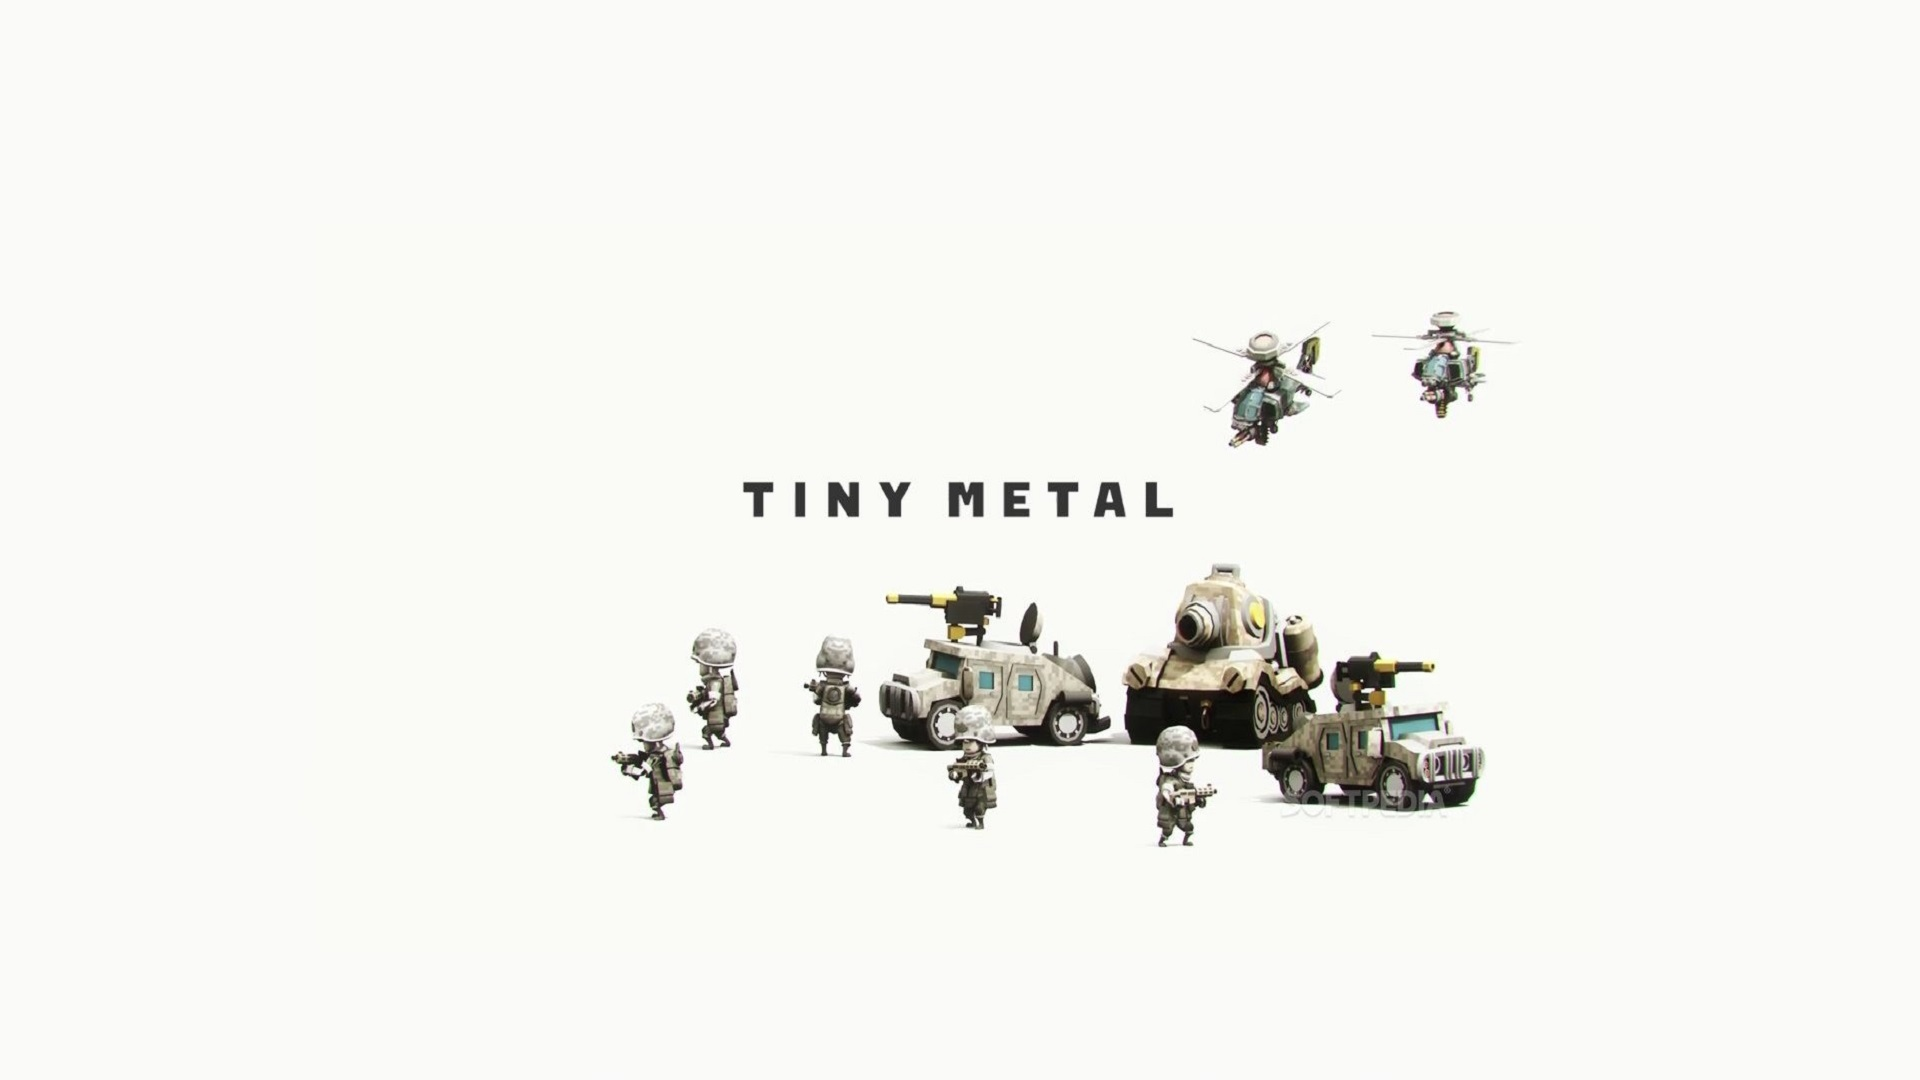 Free Download Tiny Metal Hd Wallpapers